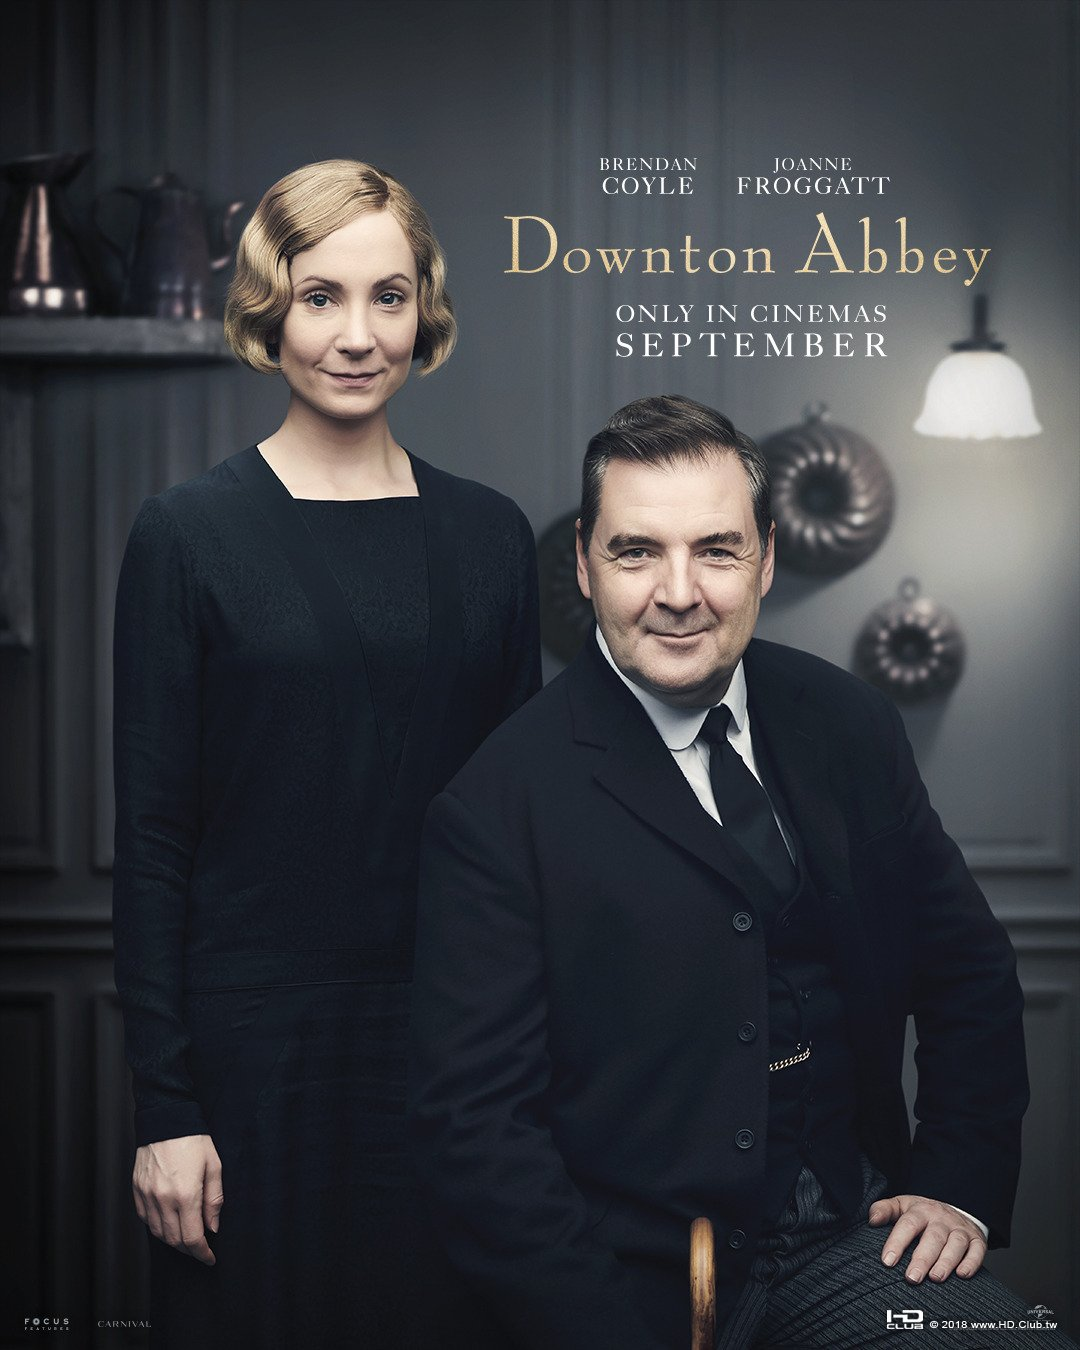 downton_abbey_ver7_xlg.jpg